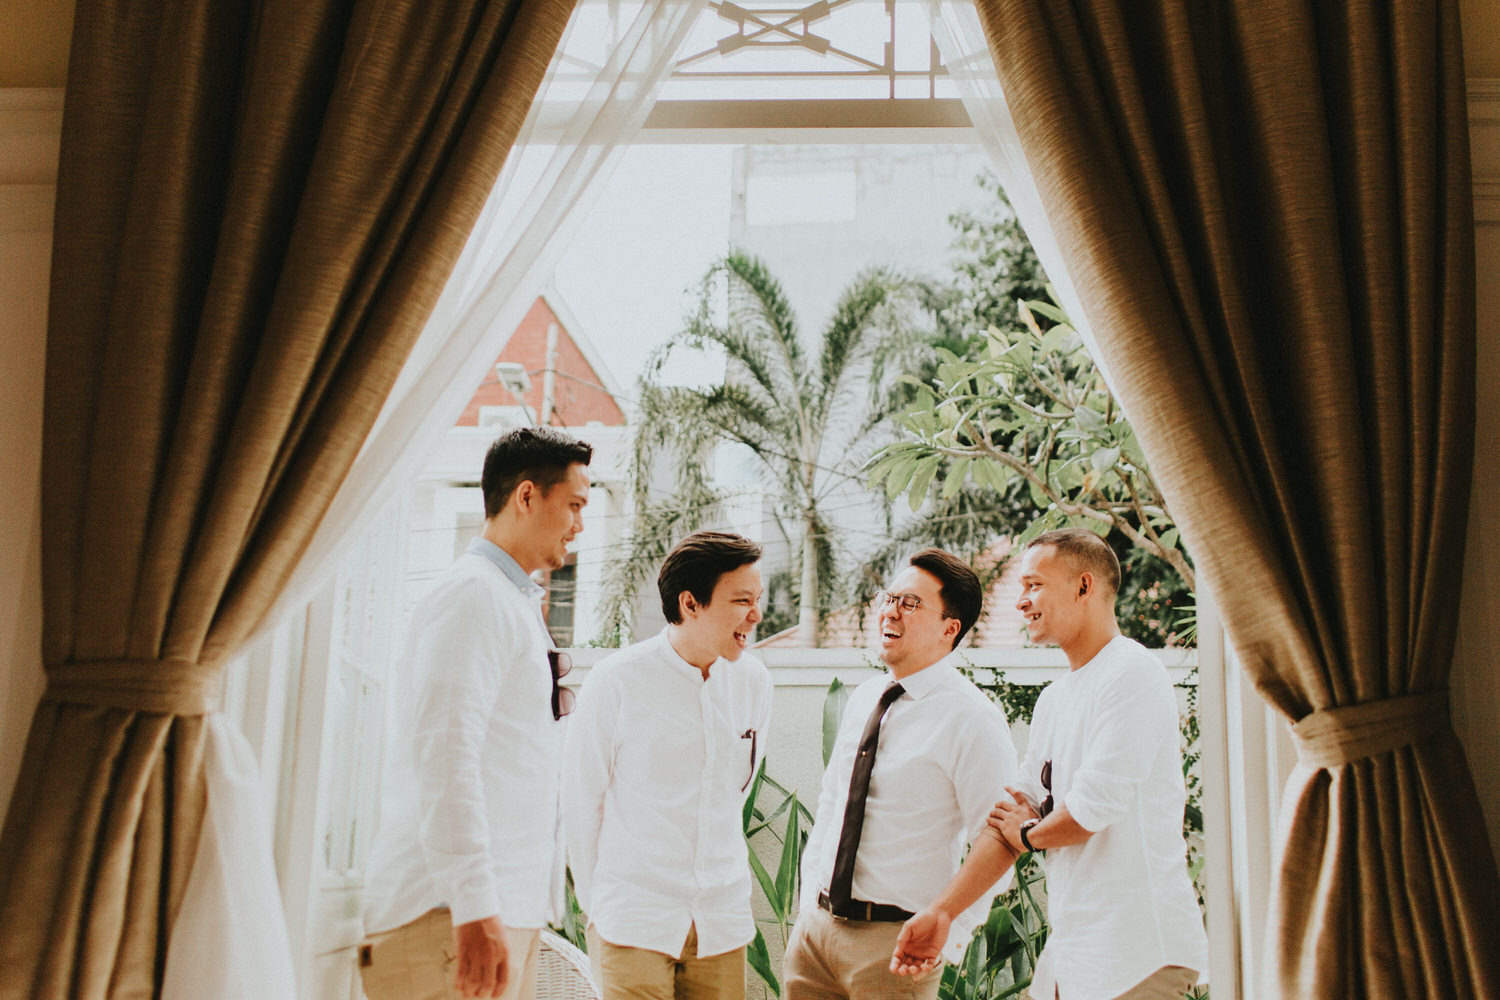 jakarta wedding-destination wedding-bali wedding photographer-diktatphotography-kadek artayasa-jason+devi-28